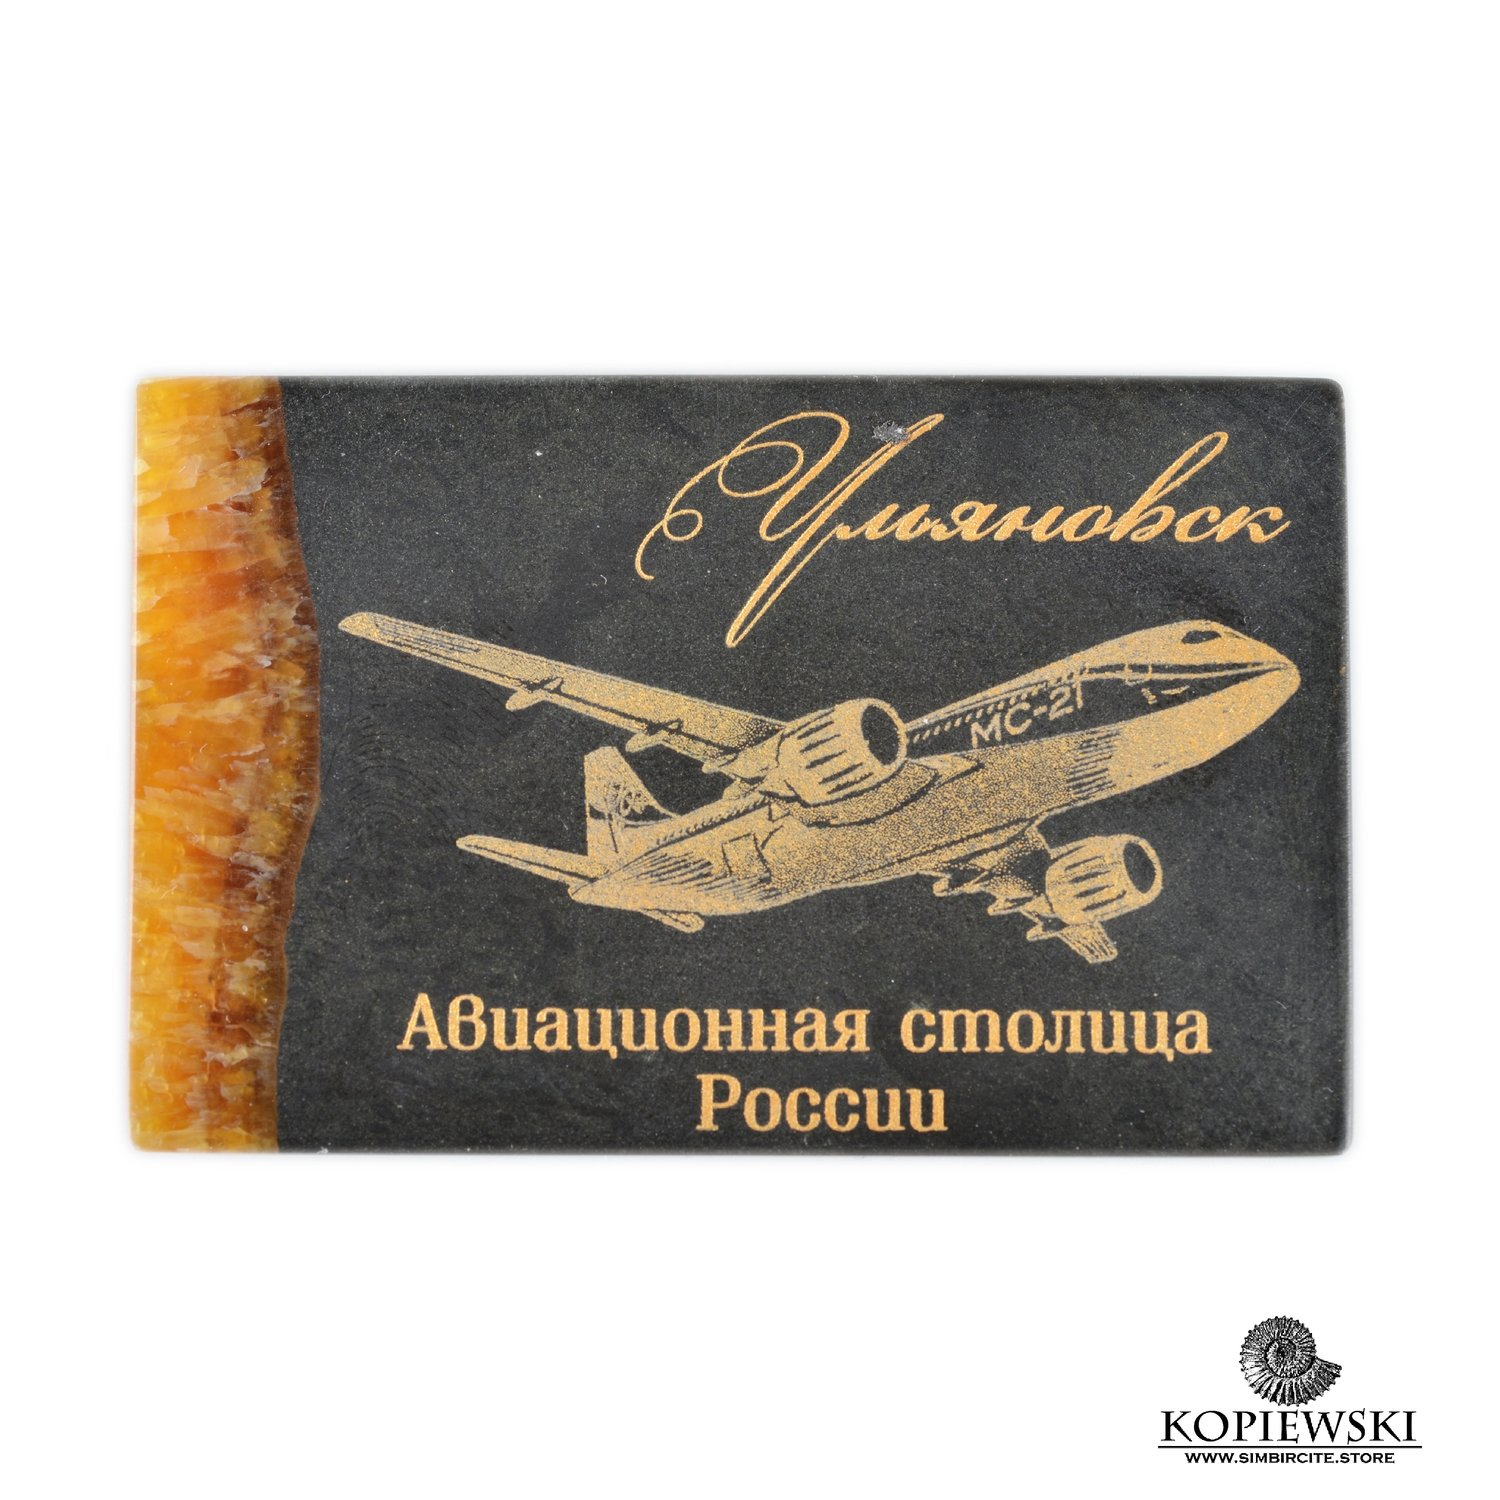 Timbercity magnet is engraved with the Aviation capital of Russia